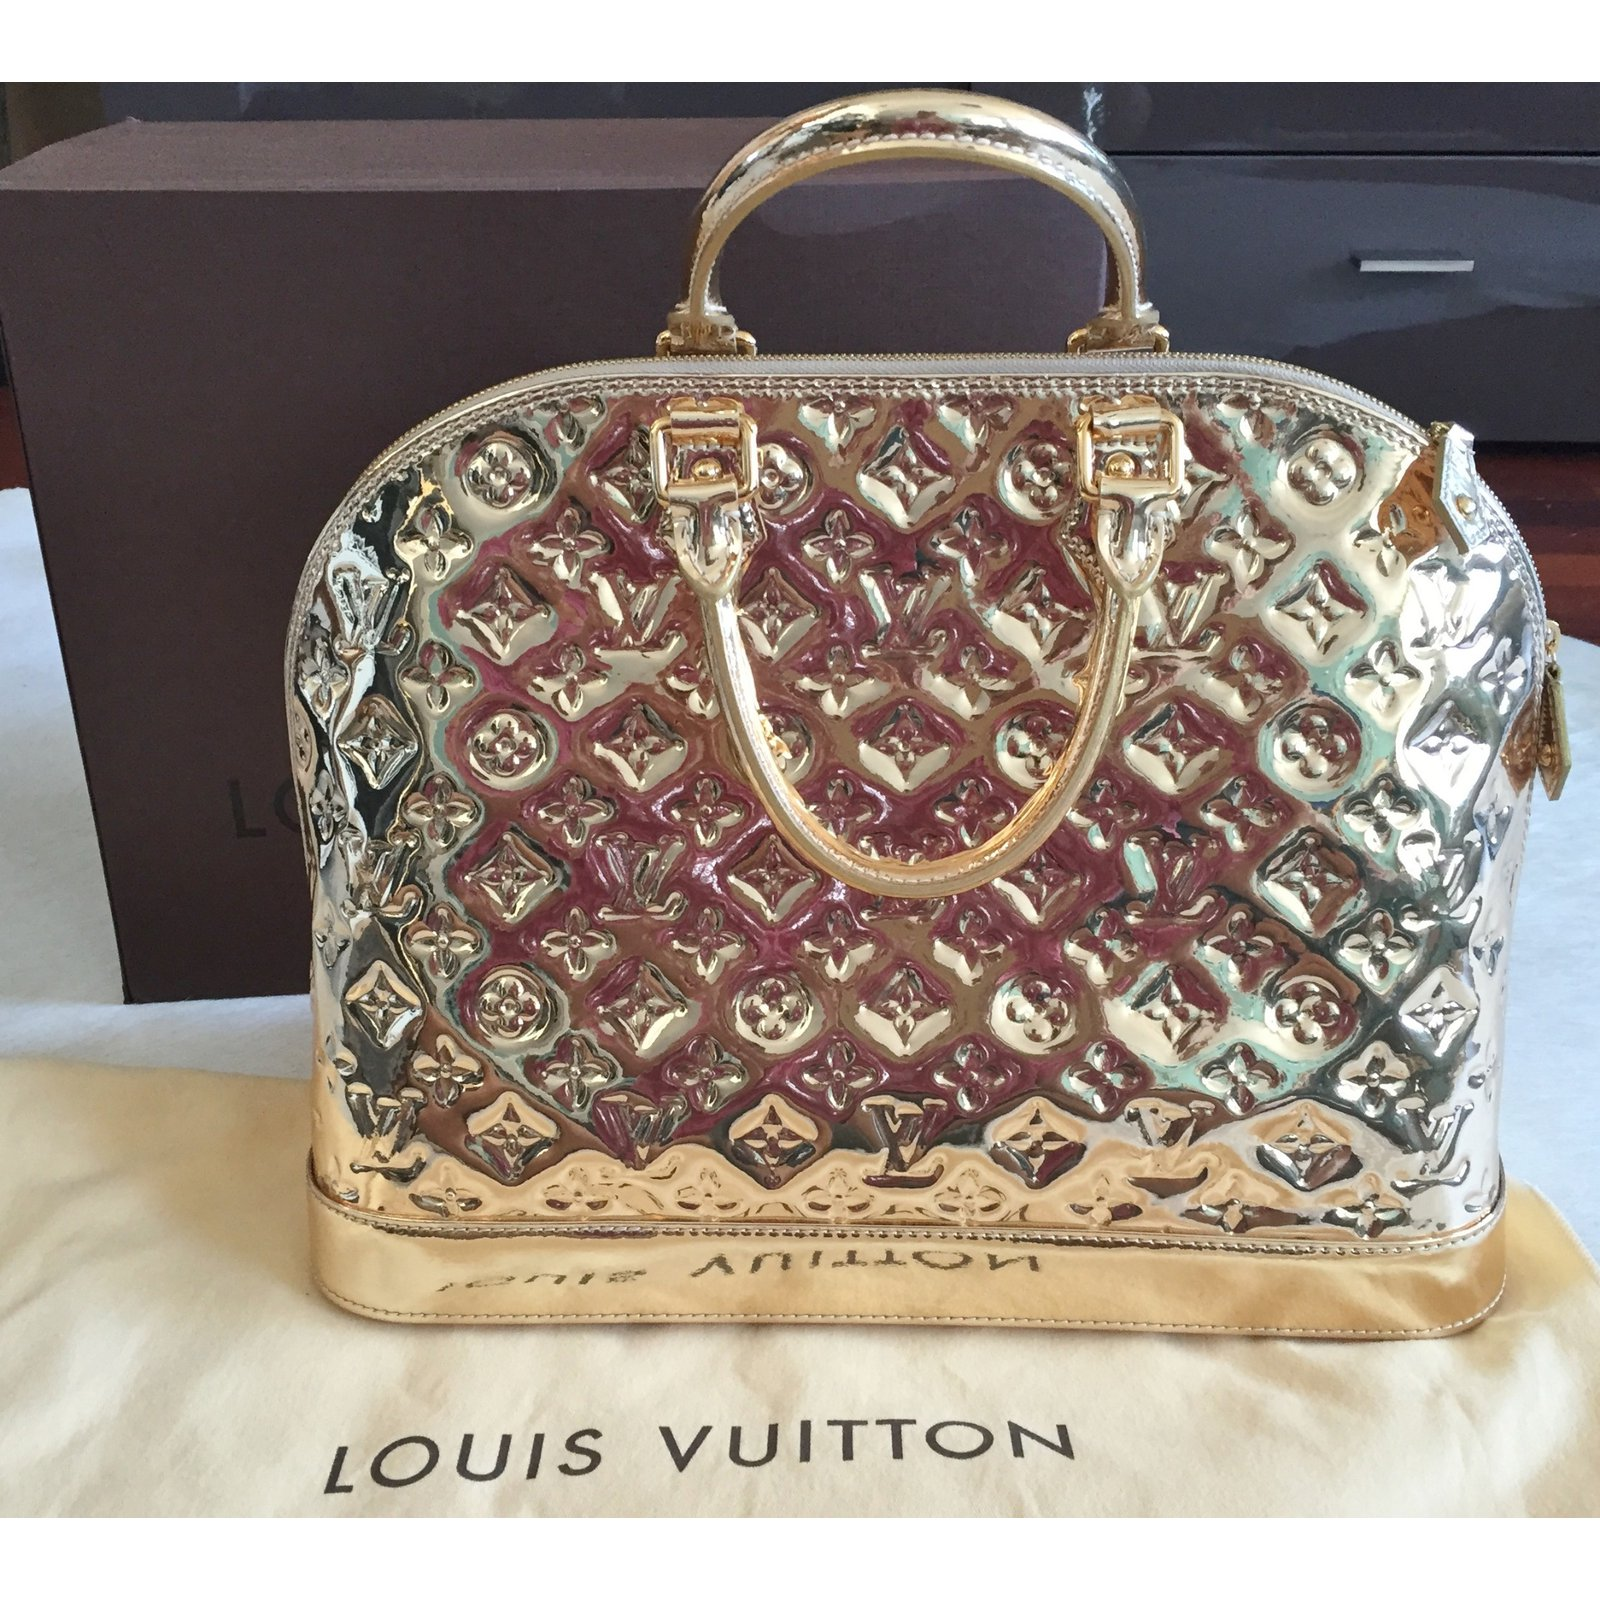 18b2ac266e4b Louis Vuitton ALMA MM MIROIR DORE GOLD - SPECIAL EDITION Handbags Patent  leather Golden ref.23487 - Joli Closet